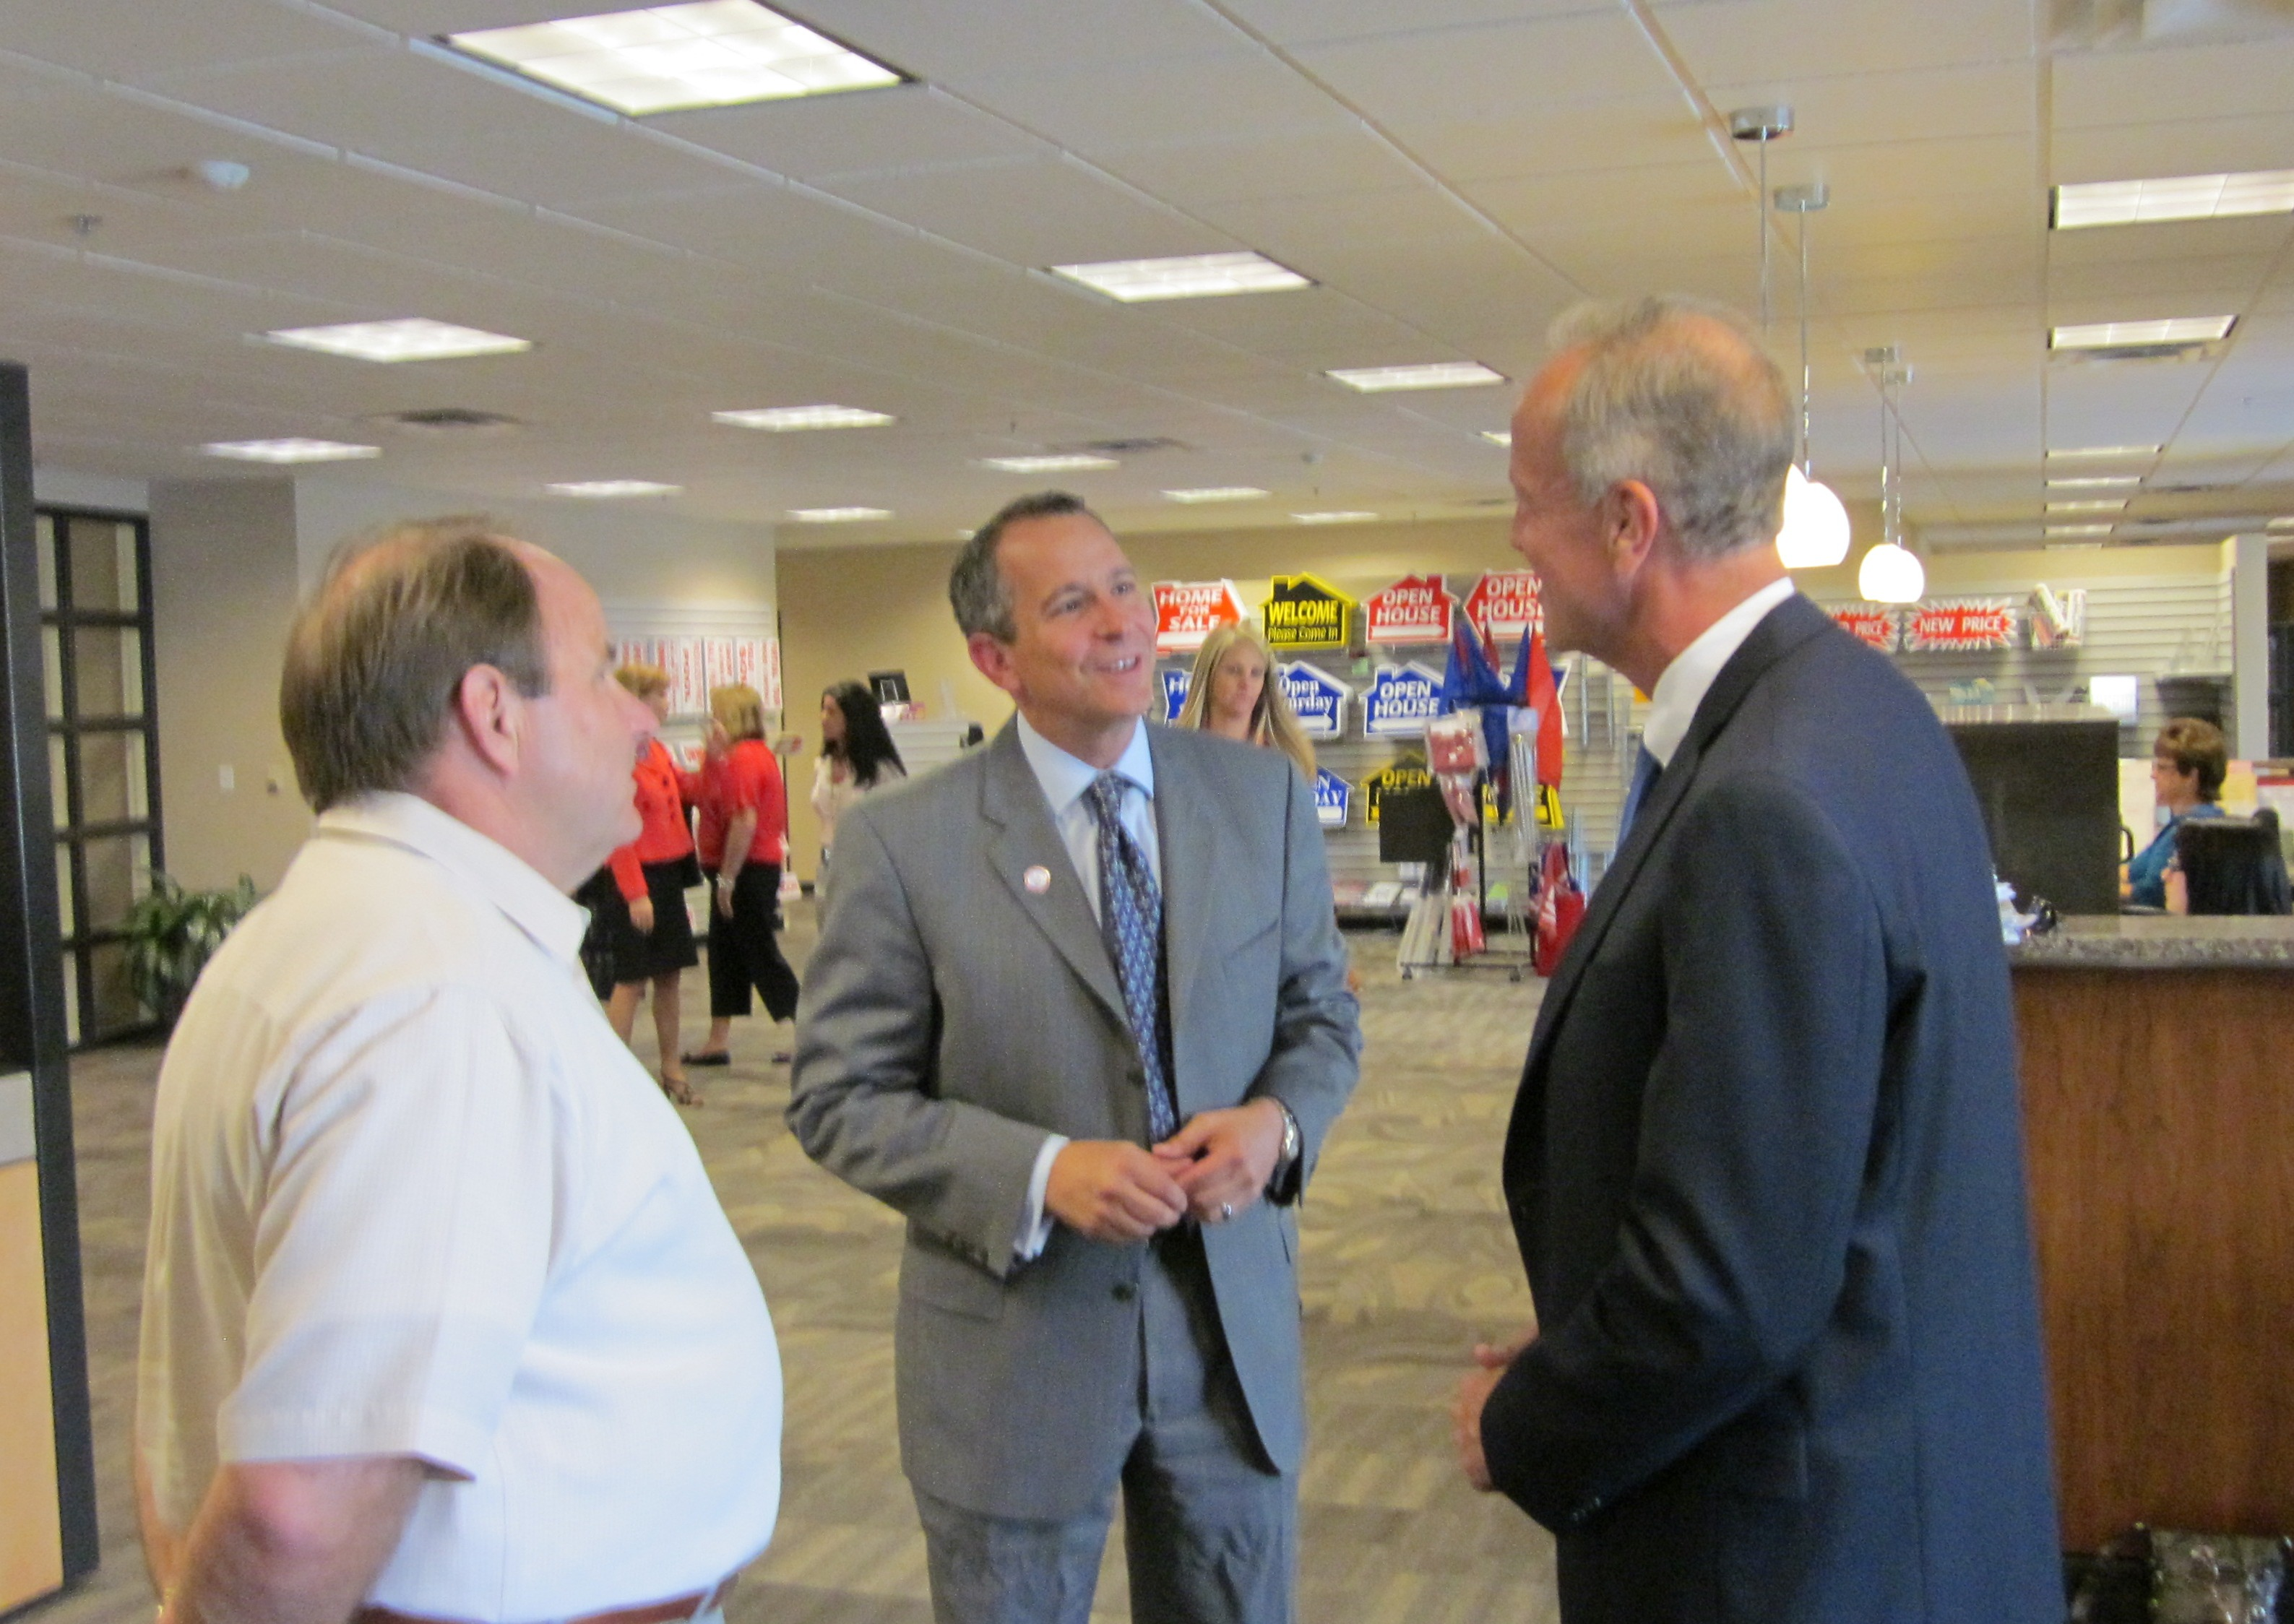 Sen. Moran Meets with Kansas Realtors